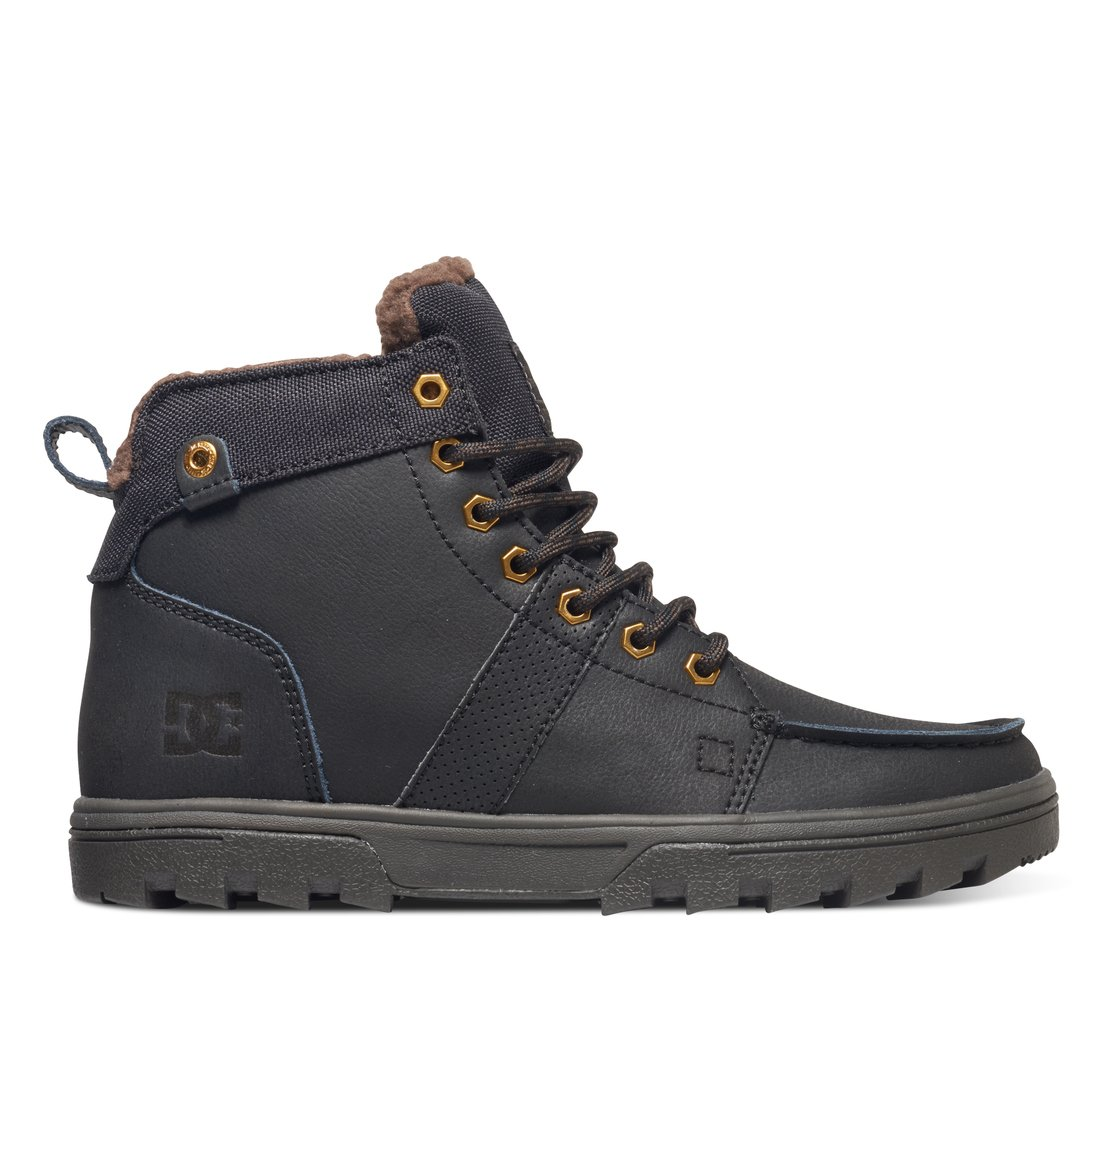 DC Shoes™ Woodland Winter Weather Boots 303241 | eBay